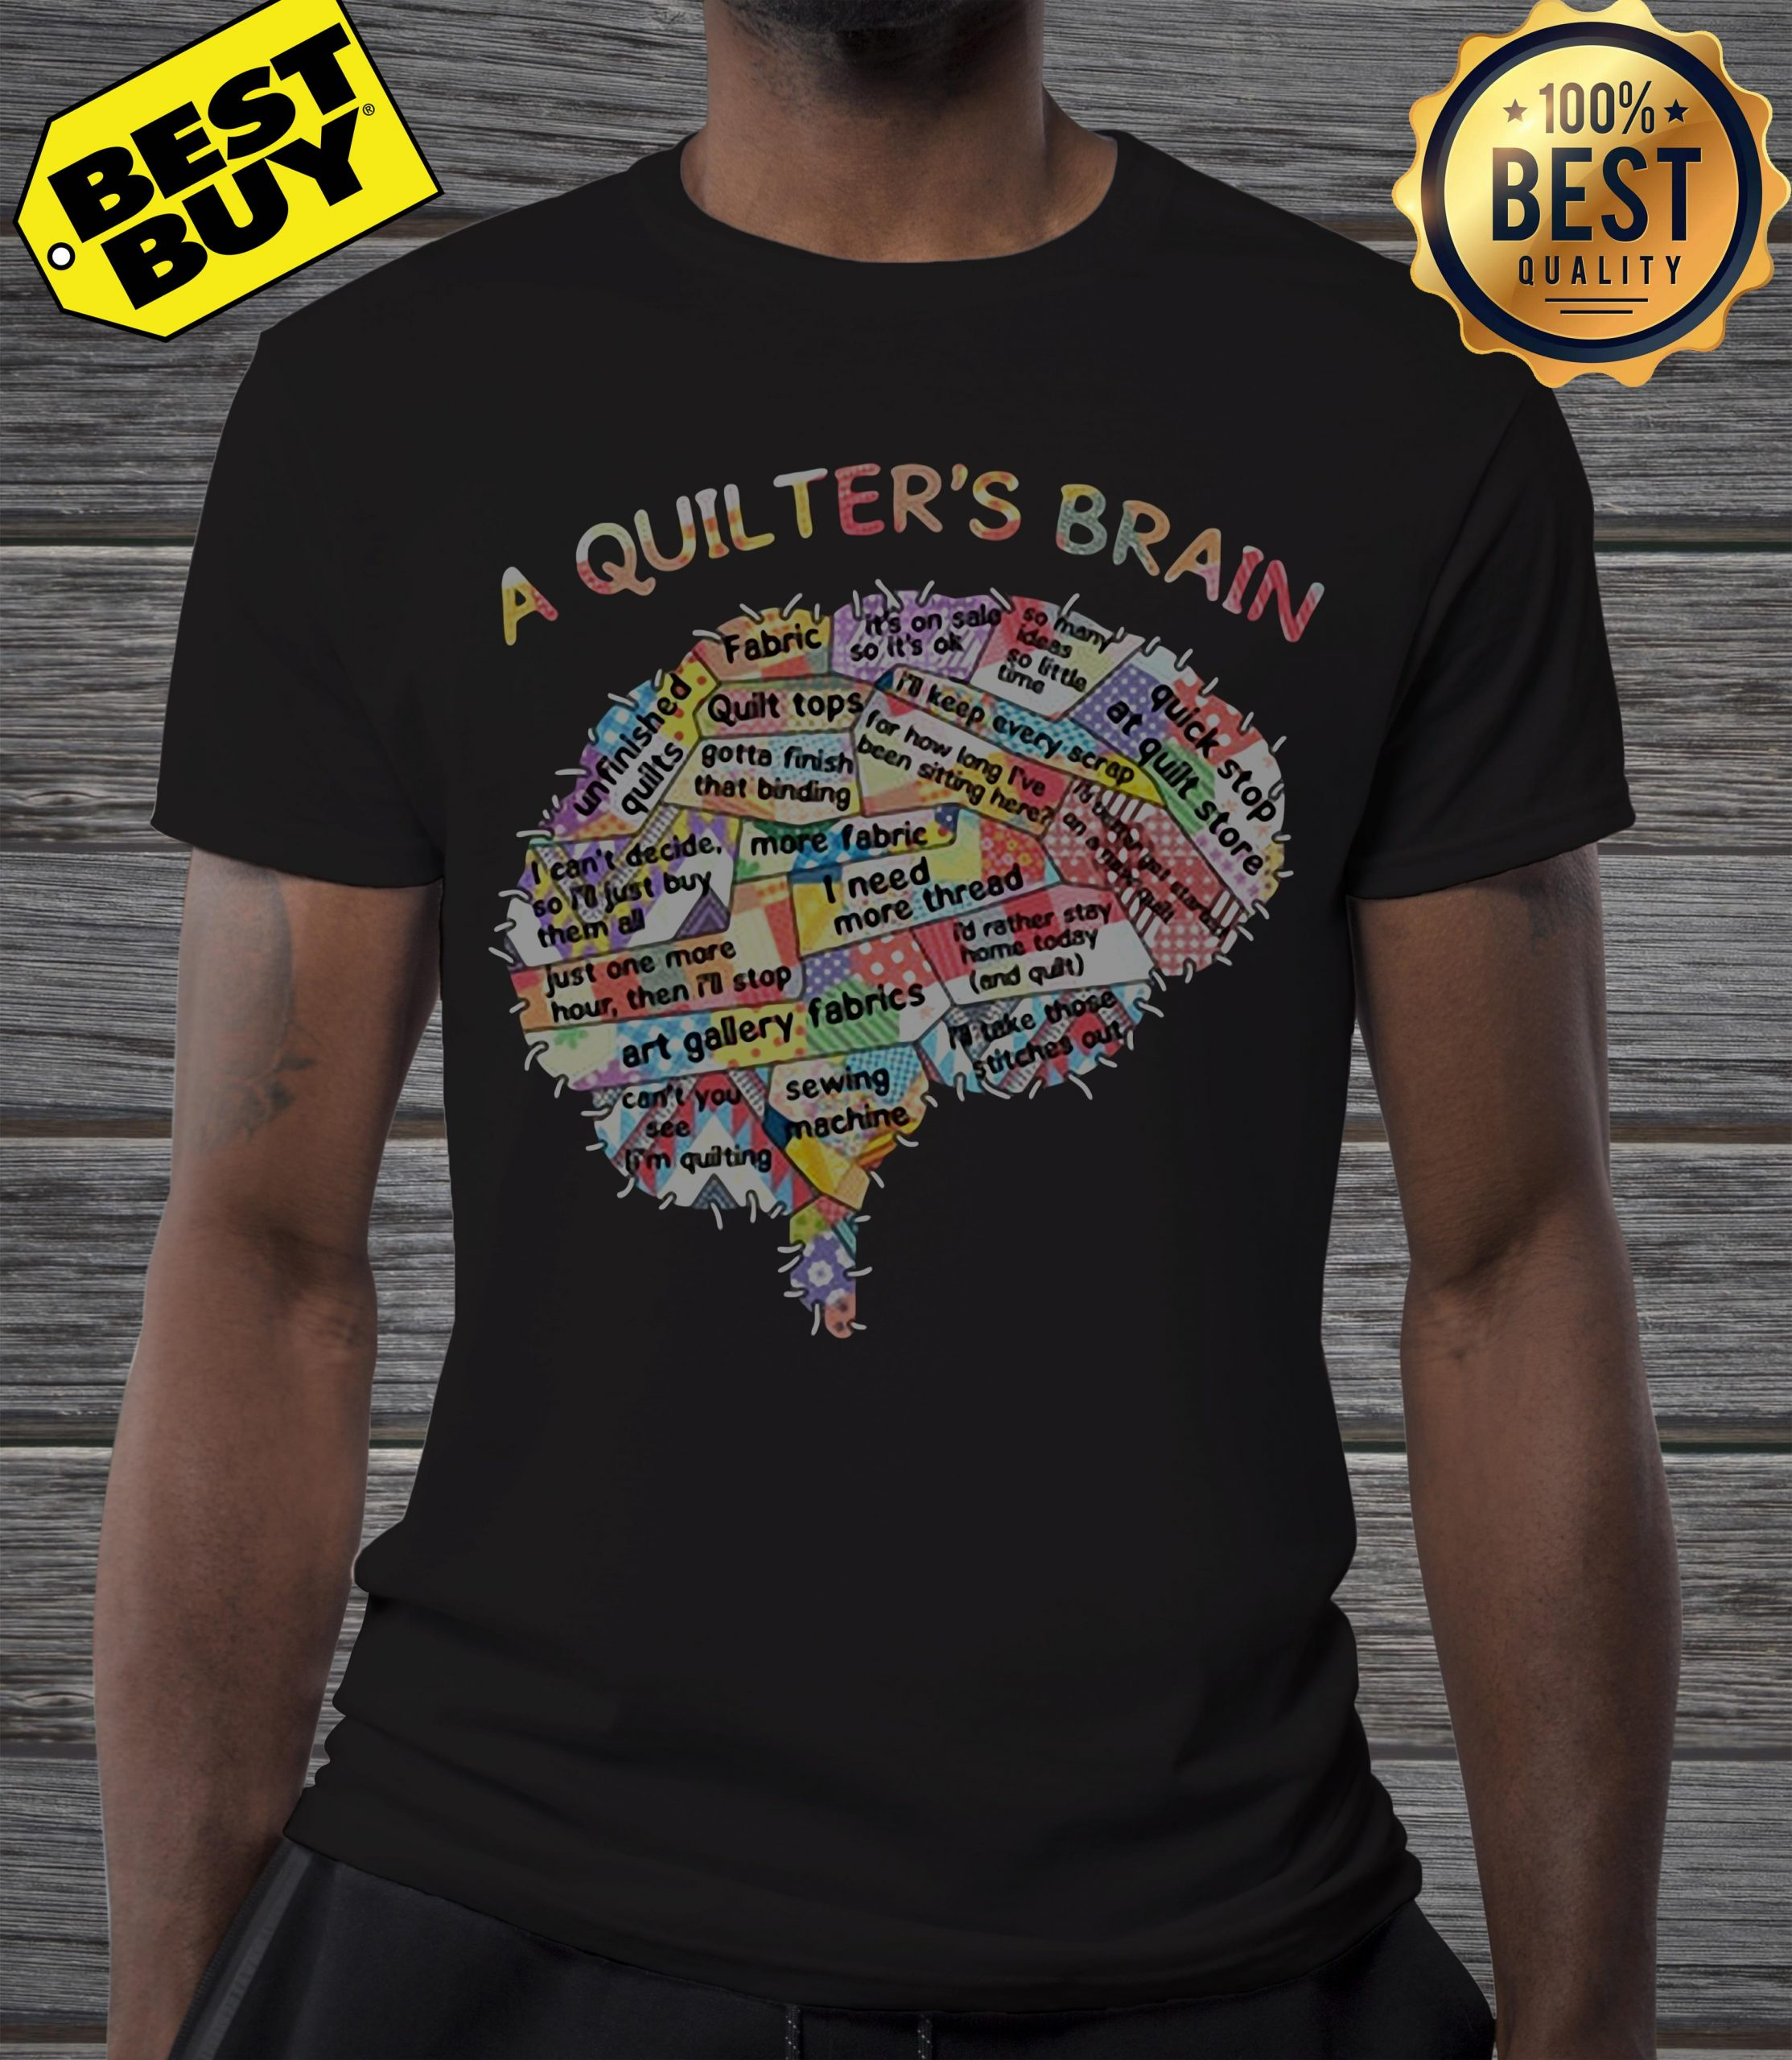 A quilter's brain of people shirt